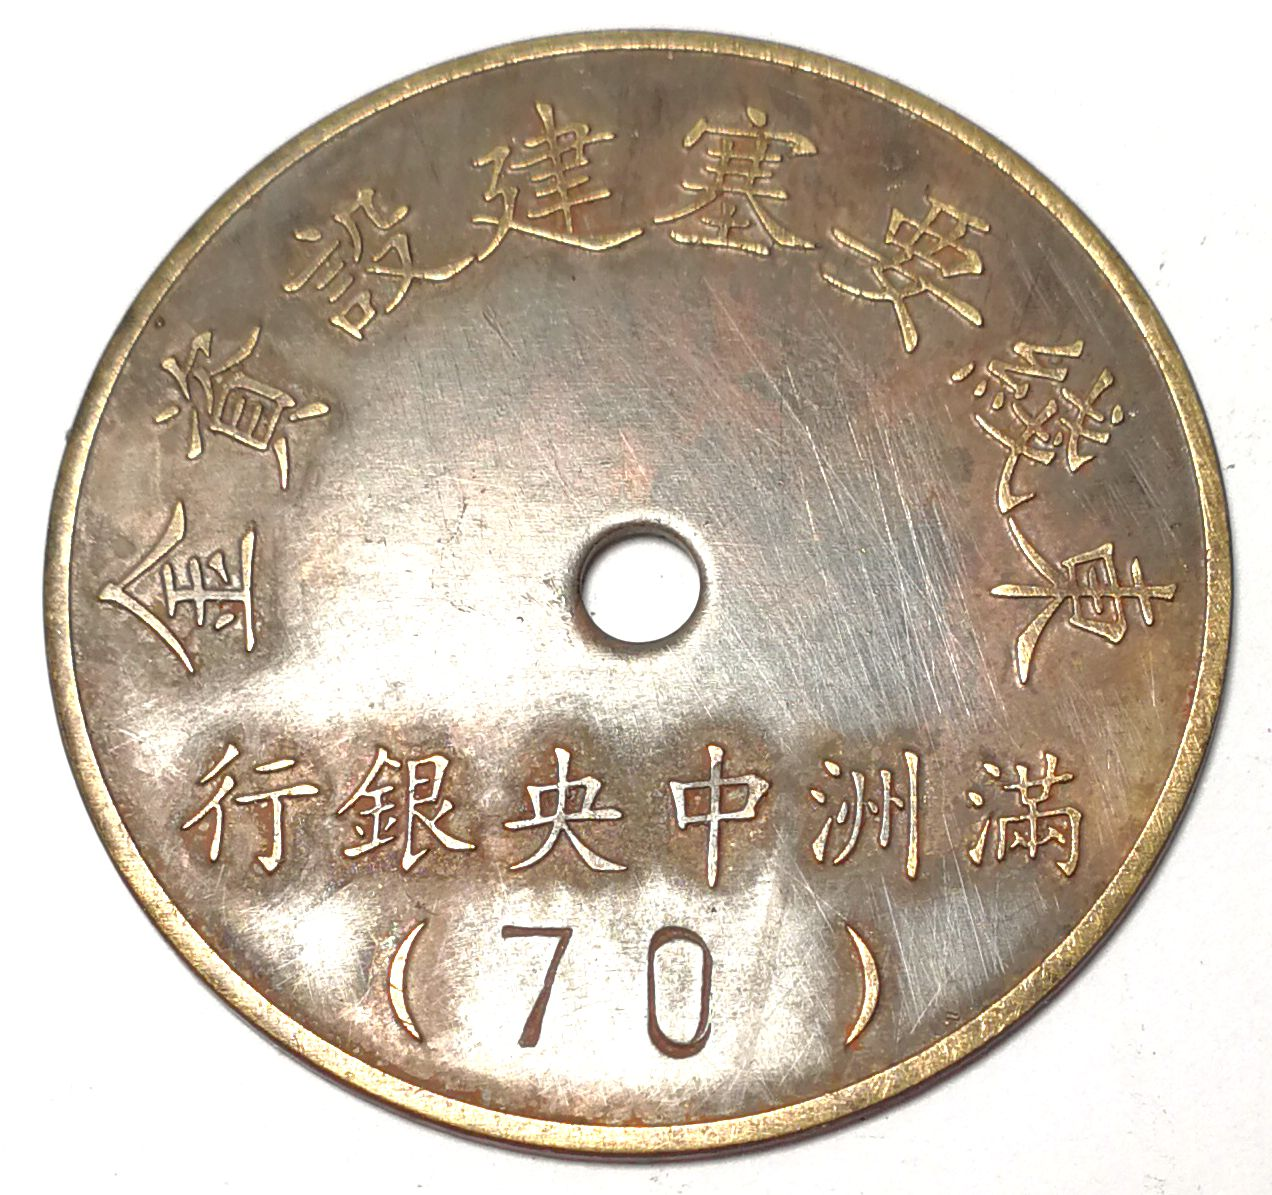 BT559, Manchukuo East Line Fortresses Construction Fund, 70 Yen, 1944